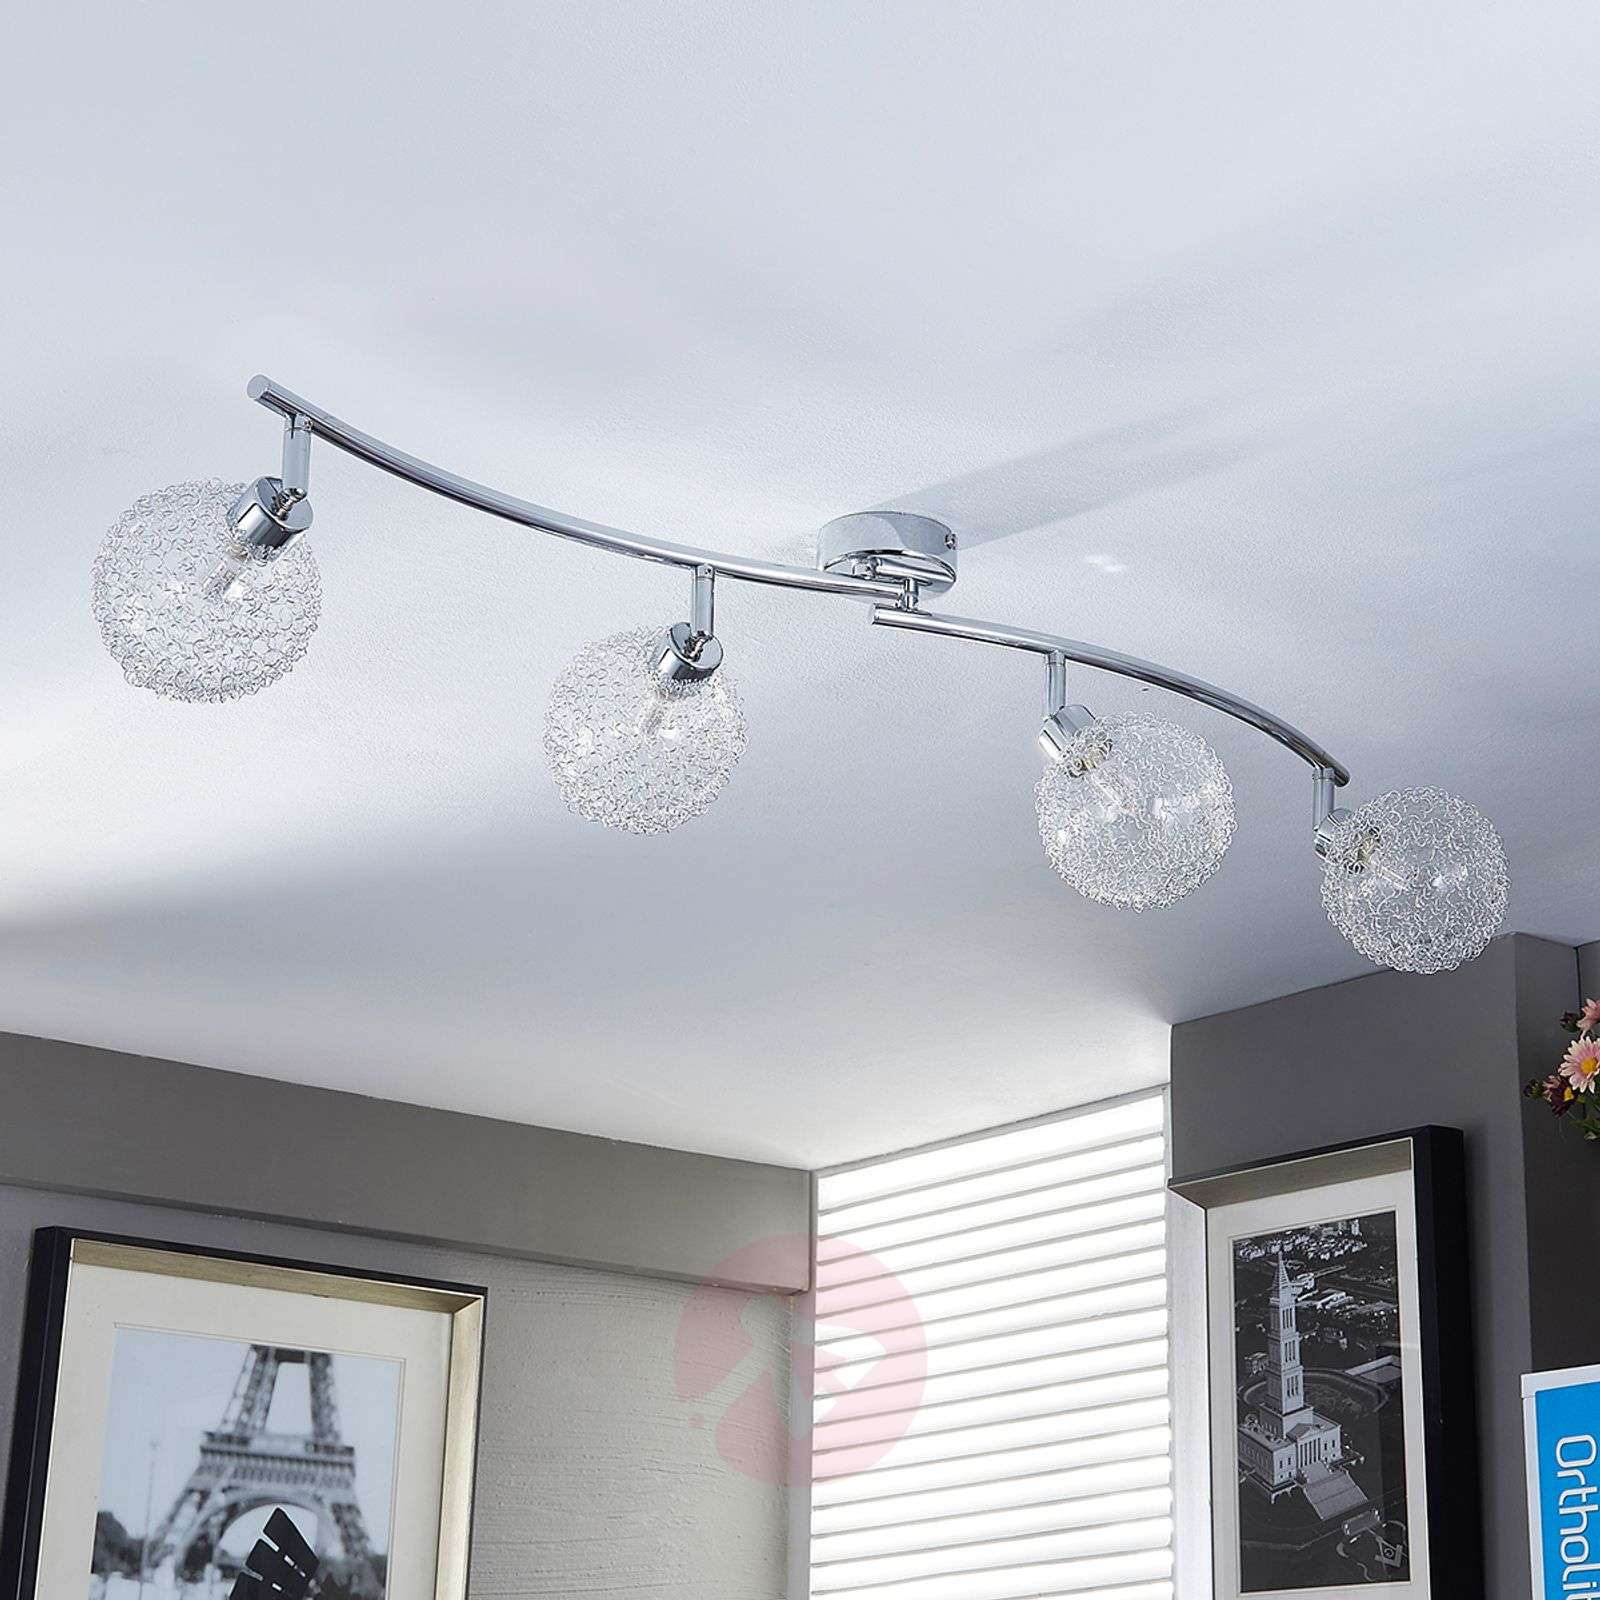 Undulating G9 ceiling lamp Ticino with LEDs-9620781-03